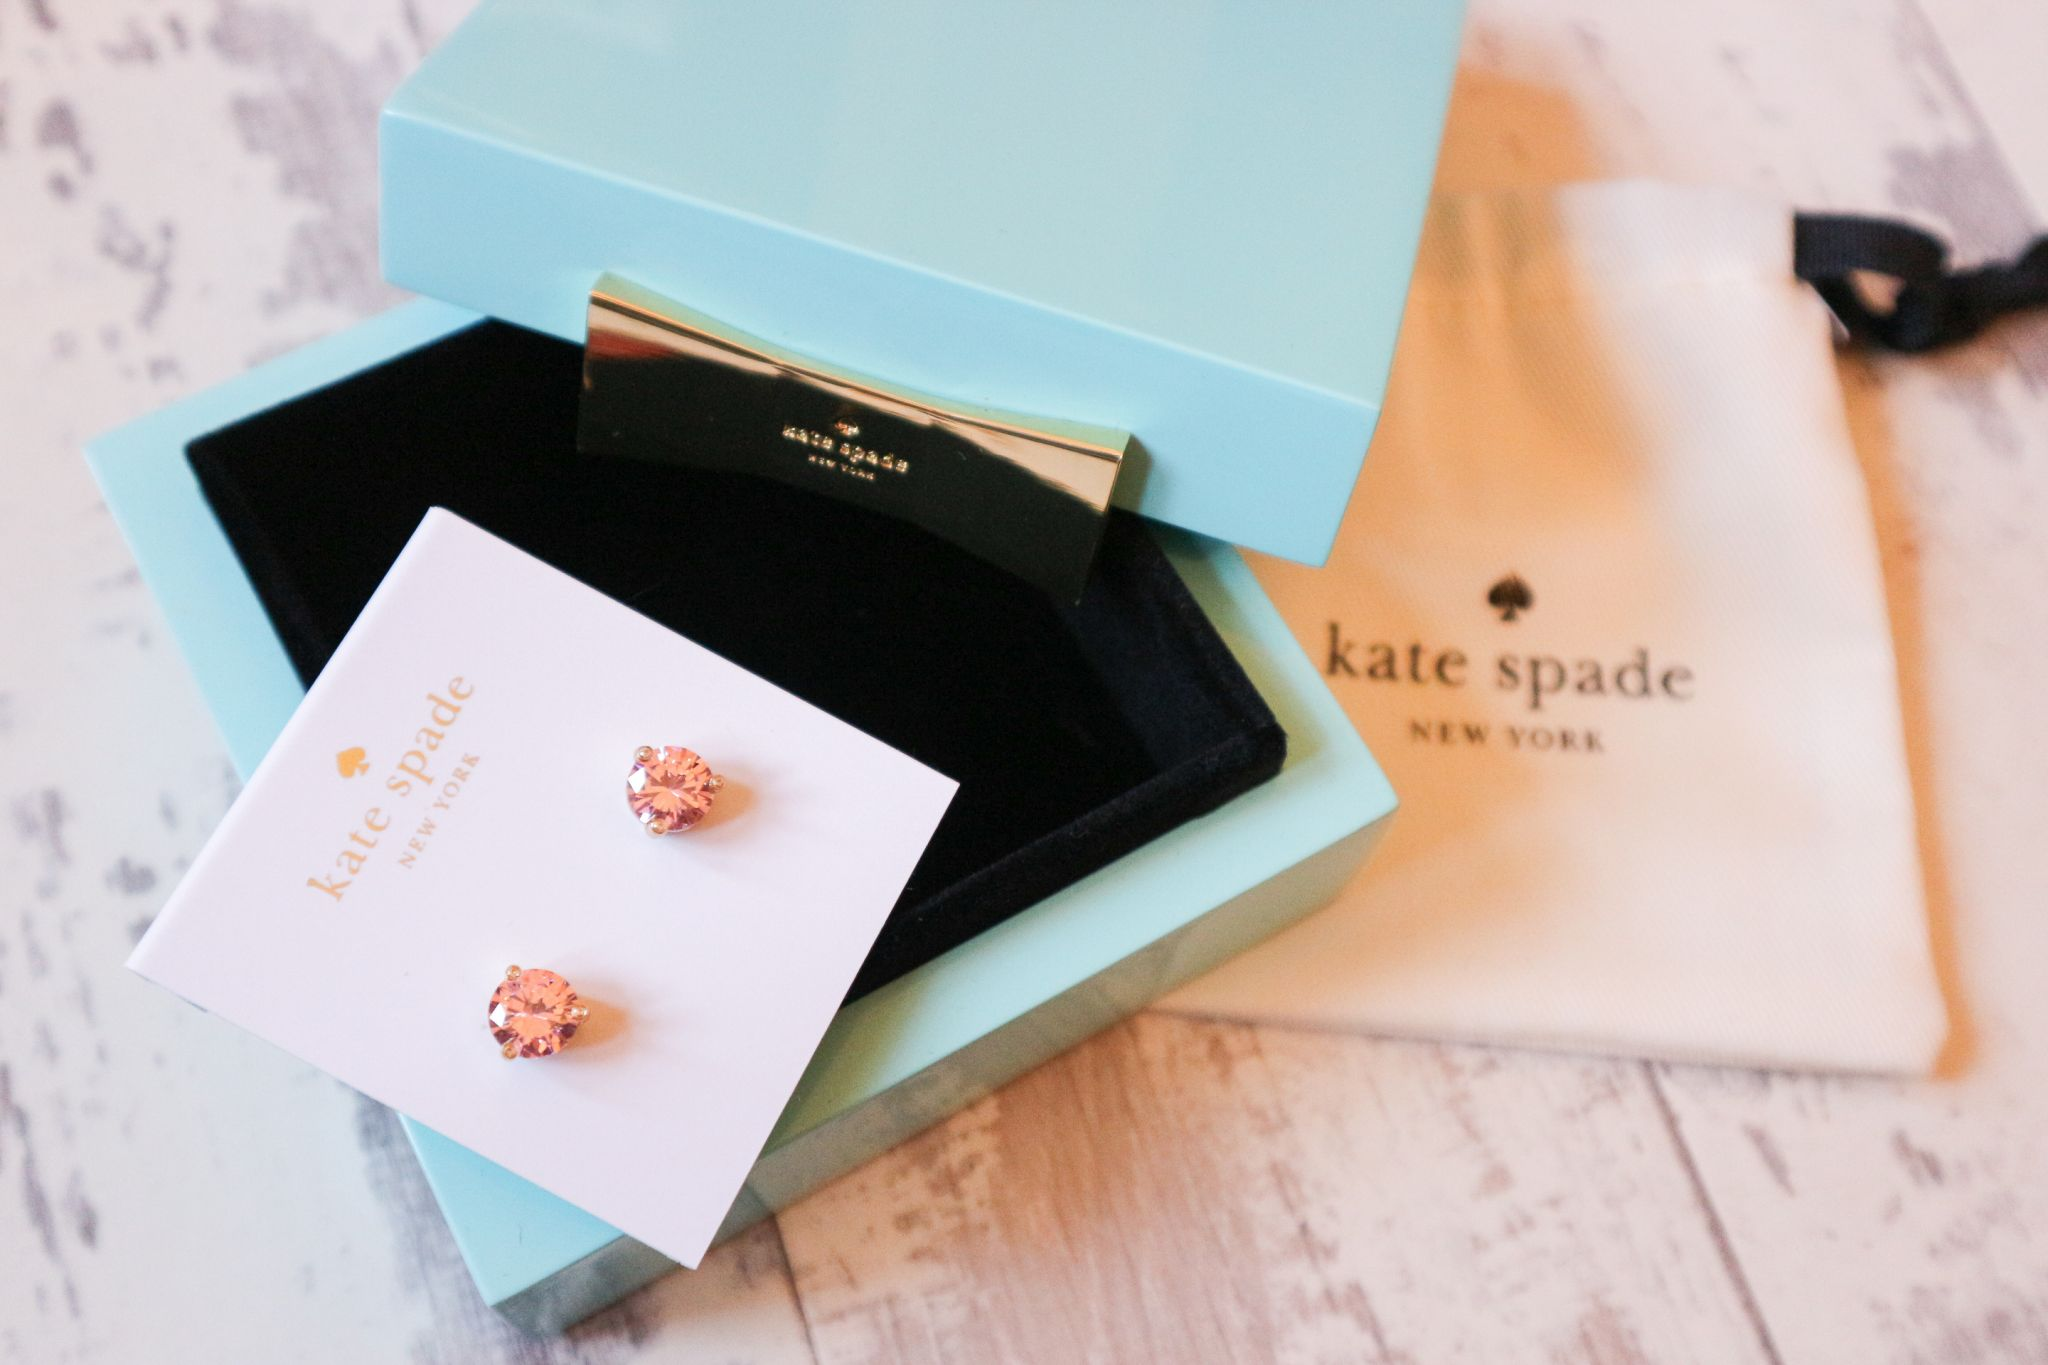 kate spade earrings and trinket box